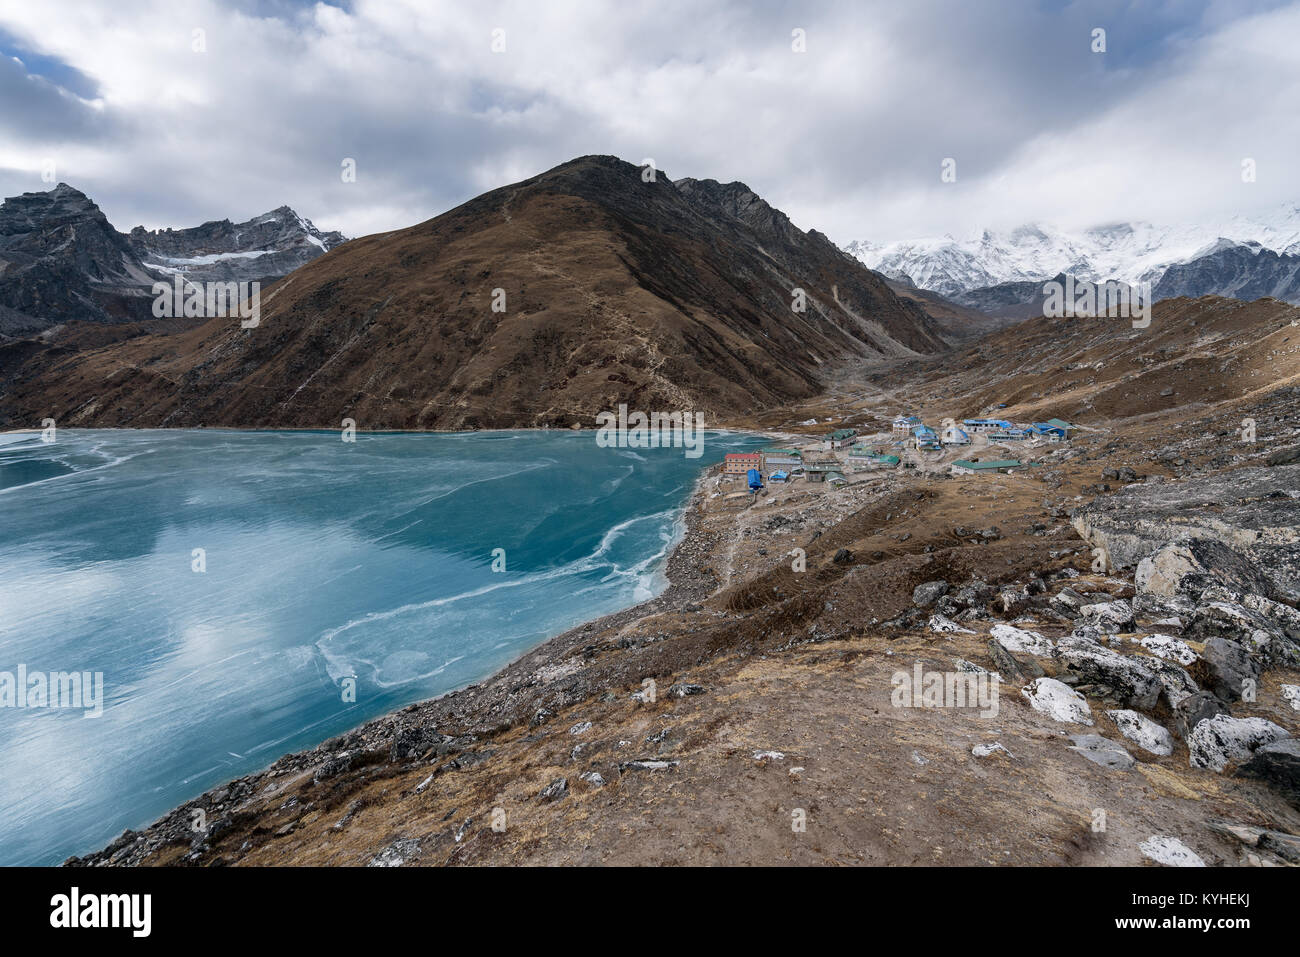 Gokyo village and lake along the three passes trek in Nepal - Stock Image